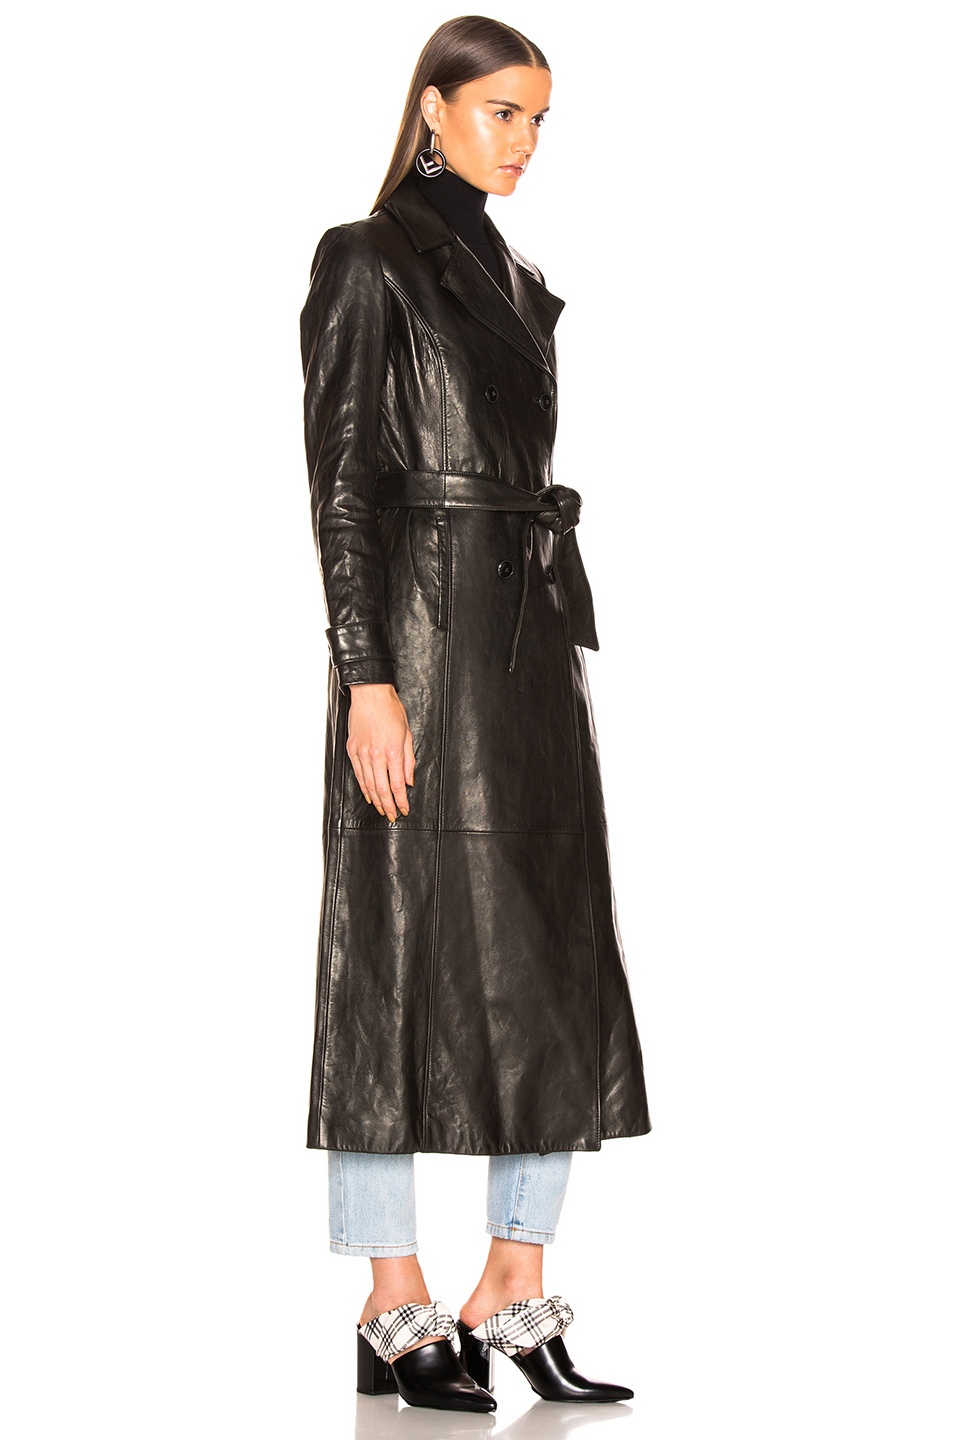 FRAME for FWRD Leather Trench Coat in Noir | FWRD